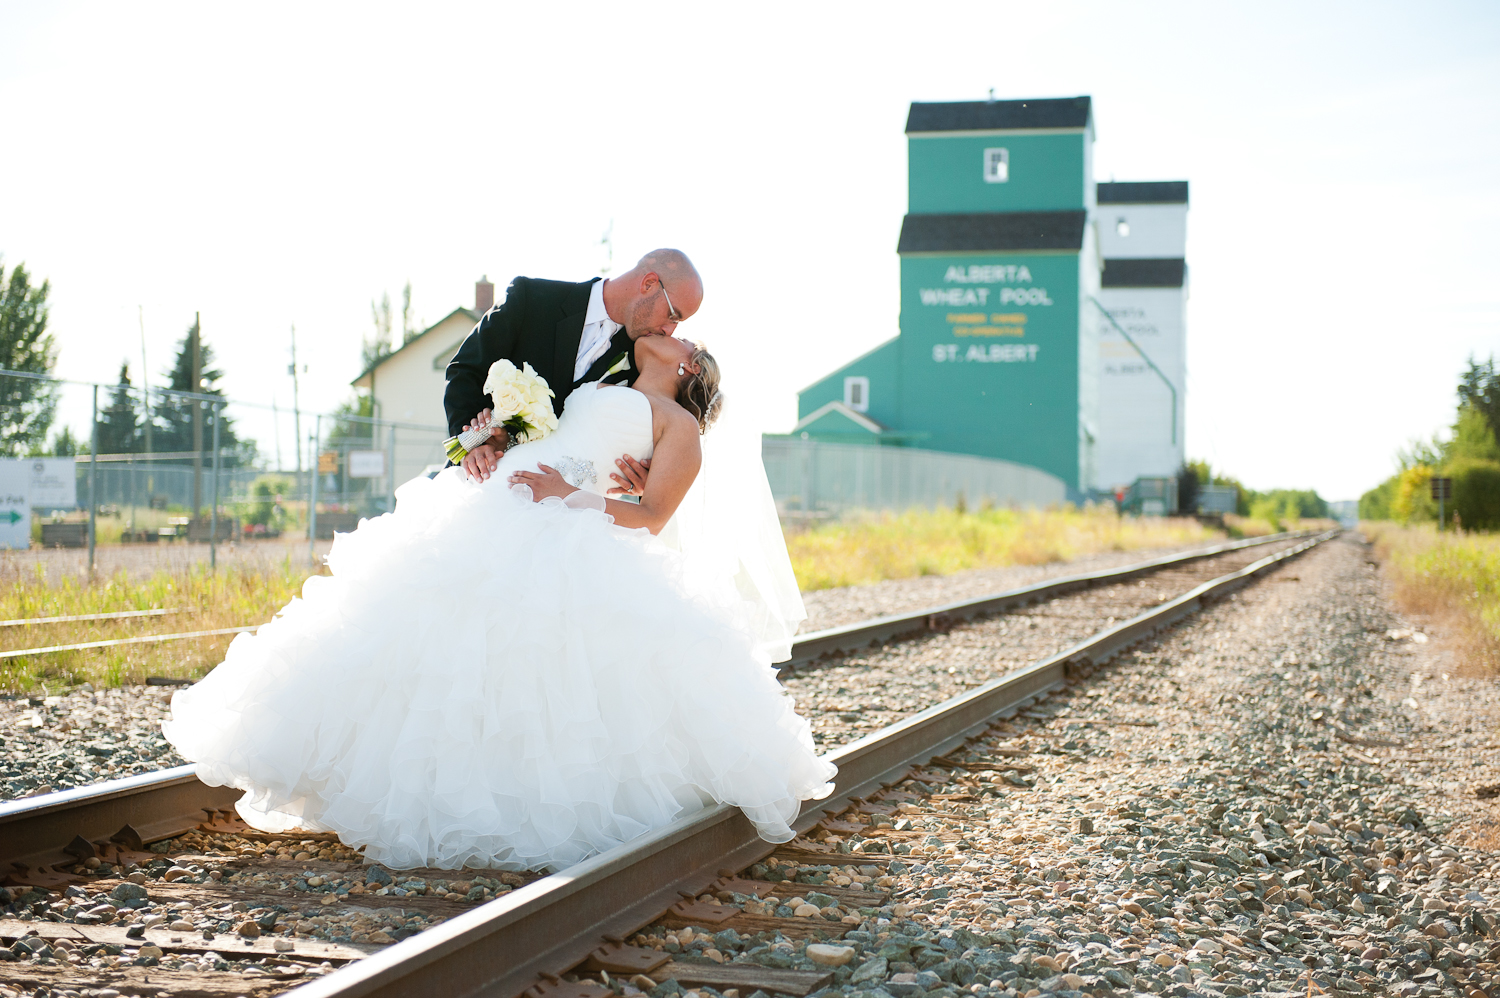 sean-williams-wedding-lifestyle-photography-edmonton-photographer-professional-71.jpg